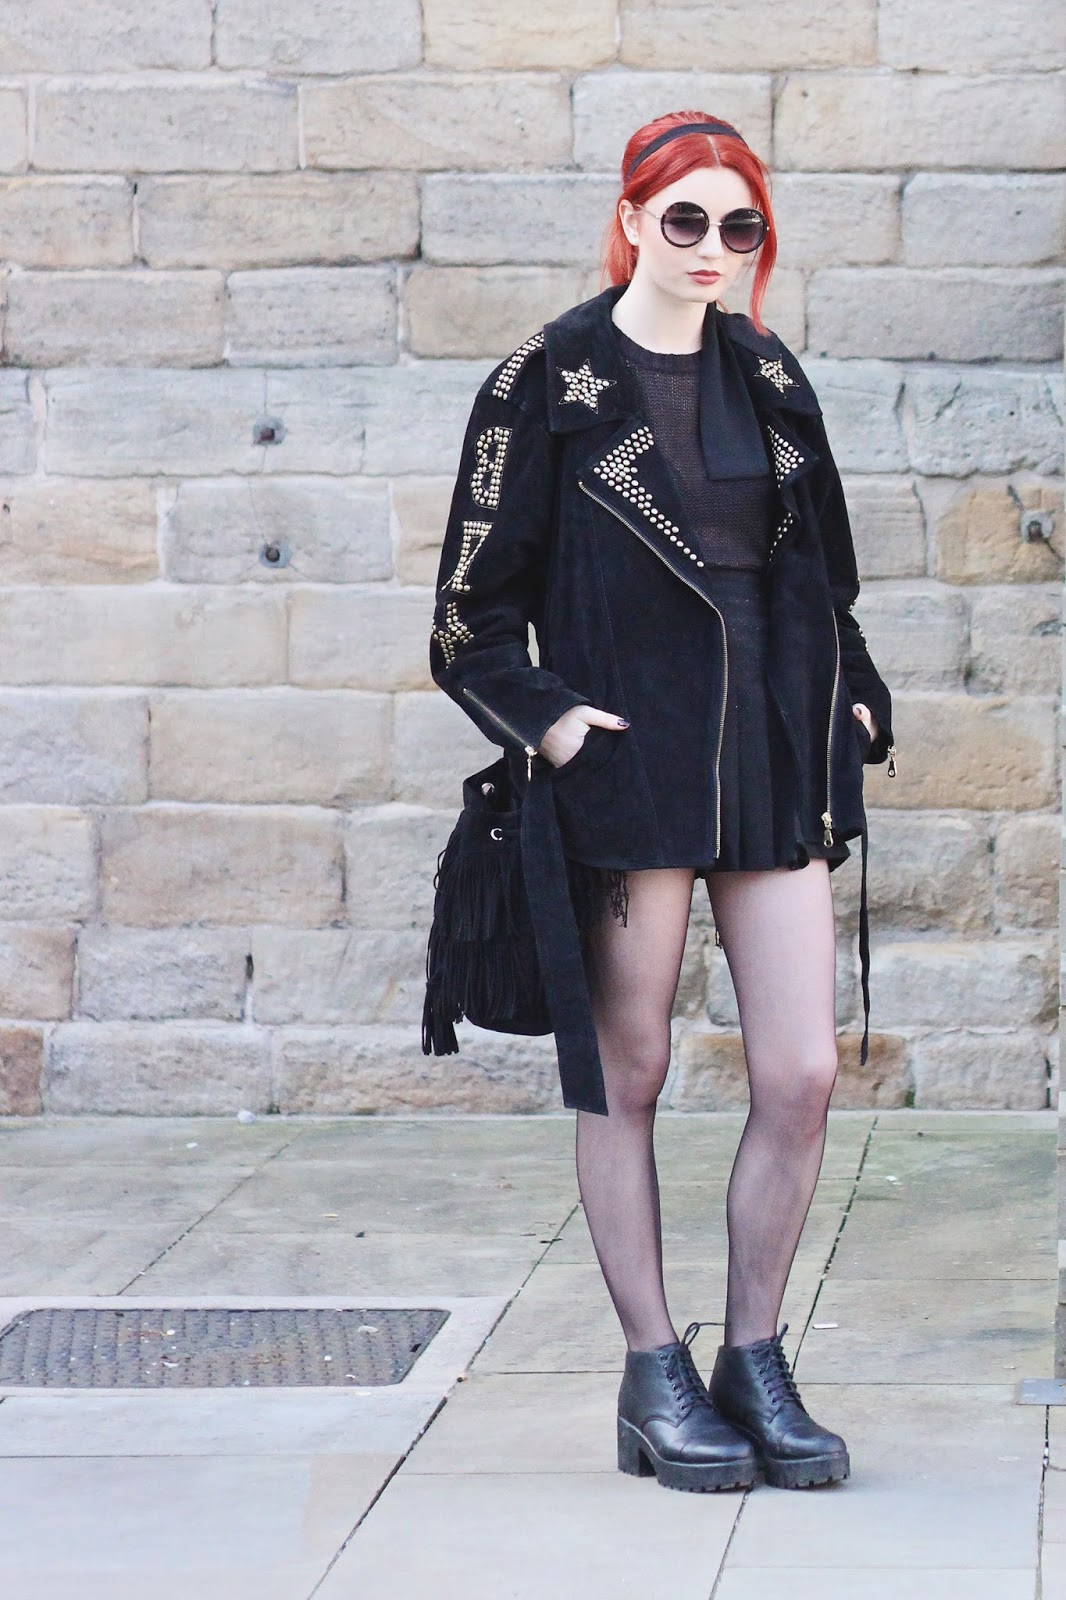 bac876aeed6 Summer Goth    Vintage Suede Jacket - Hannah Louise Fashion